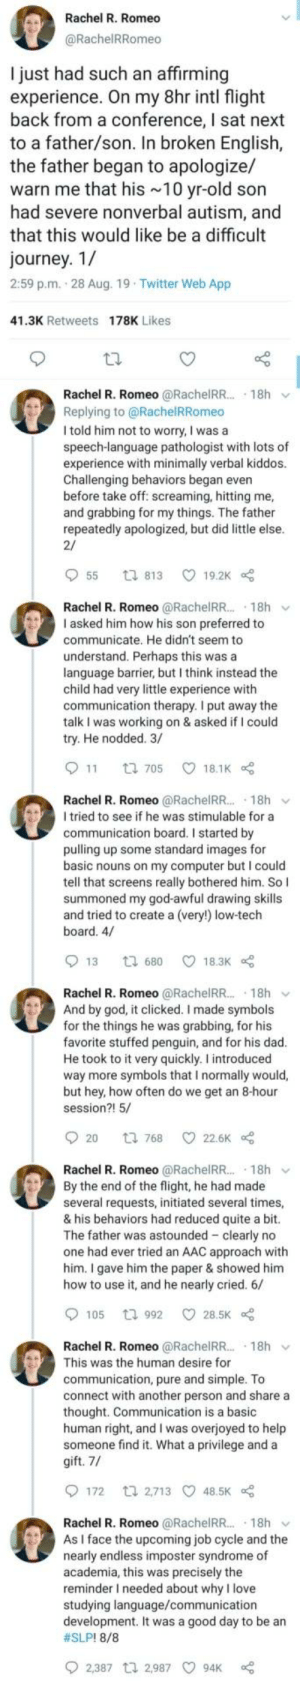 This👏Is👏Verry👏Wholesome: Rachel R. Romeo  @RachelRRomeo  I just had such an affirming  experience. On my 8hr intl flight  back from a conference, I sat next  to a father/son. In broken English,  the father began to apologize/  warn me that his 10 yr-old son  had severe nonverbal autism, and  that this would like be a difficult  journey. 1/  2:59 p.m. 28 Aug. 19 Twitter Web App  41.3K Retweets 178K Likes  Rachel R. Romeo @RachelRR.. 18h  Replying to @RachelRRomeo  I told him not to worry, I was a  speech-language pathologist with lots of  experience with minimally verbal kiddos.  Challenging behaviors began even  before take off: screaming, hitting me,  and grabbing for my things. The father  repeatedly apologized, but did little else.  2/  55  19.2K  t 813  Rachel R. Romeo @RachelR... 18h  I asked him how his son preferred to  communicate. He didn't seem to  understand. Perhaps this was a  language barrier, but I think instead the  child had very little experience with  communication therapy. I put away the  talk I was working on & asked if I could  try. He nodded. 3/  11  18.1K  t 705  Rachel R. Romeo @RachelR... 18h  I tried to see if he was stimulable for a  communication board. I started by  pulling up some standard images for  basic nouns on my computer but I could  tell that screens really bothered him. So I  summoned my god-awful drawing skills  and tried to create a (very!) low-tech  board. 4/  13  18.3K  t 680  Rachel R. Romeo @RachelRR.. 18h  And by god, it clicked. I made symbols  for the things he was grabbing, for his  favorite stuffed penguin, and for his dad.  He took to it very quickly. I introduced  way more symbols that I normally would,  but hey, how often do we get an 8-hour  session?! 5/  20  22.6K  t 768  Rachel R. Romeo @RachelRR.. 18h  By the end of the flight, he had made  several requests, initiated several times,  & his behaviors had reduced quite a bit.  The father was astounded clearly no  one had ever tried an AAC approach with  him. I gave him the paper & showed him  how to use it, and he nearly cried. 6/  105  28.5K  t 992  Rachel R. Romeo @RachelRR.. 18h  This was the human desire for  communication, pure and simple. To  connect with another person and share a  thought. Communication is a basic  human right, and I was overjoyed to help  someone find it. What a privilege and a  gift. 7/  172  t 2,713 48.5K  Rachel R. Romeo @RachelRR...  As I face the upcoming job cycle and the  nearly endless imposter syndrome of  academia, this was precisely the  reminder I needed about why I love  studying language/communication  development. It was a good day to be an  18h  #SLP! 8/8  2,387 t 2,987  94K This👏Is👏Verry👏Wholesome